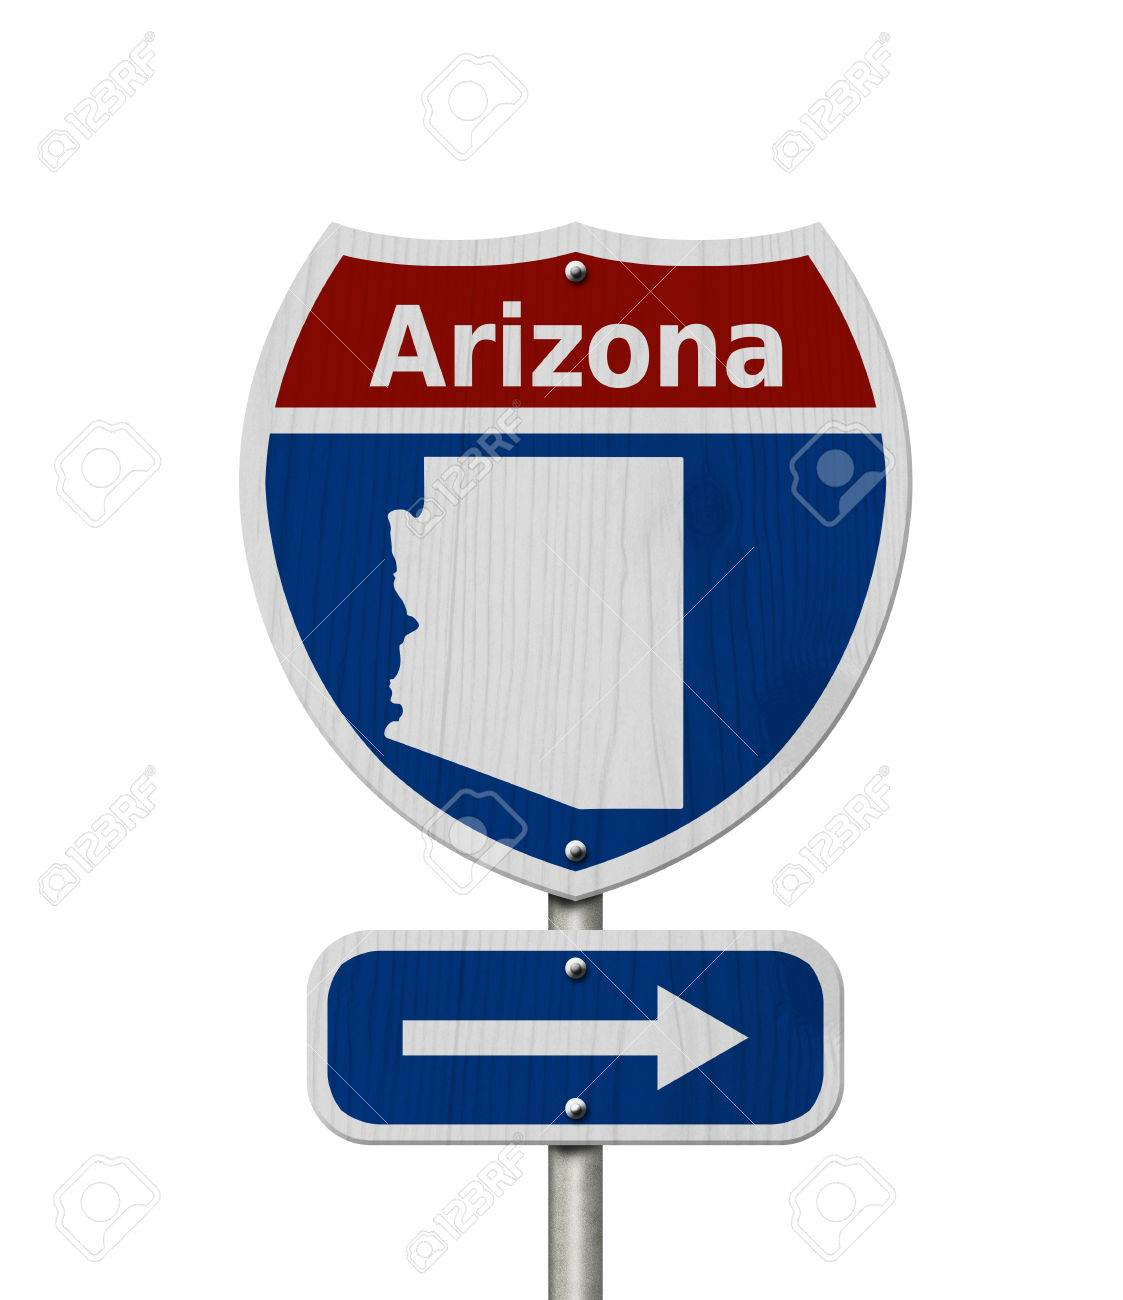 Road trip to Arizona, Red, white and blue interstate highway.. Interstate Highway Map Of Arizona on driving map of arizona, route 40 arizona, i-10 arizona, highway map of southern arizona, full map of arizona, map of south tucson arizona, freeway map of arizona, interstate 269 map, trail map of arizona, map of california and arizona, map of sun lakes arizona, old road maps arizona, fault line map of arizona, interstate 10 arizona, us road map arizona, map of interstate 40 arizona, state highway map of arizona, arizona state map of arizona, map of 202 loop arizona, interstates in arizona,